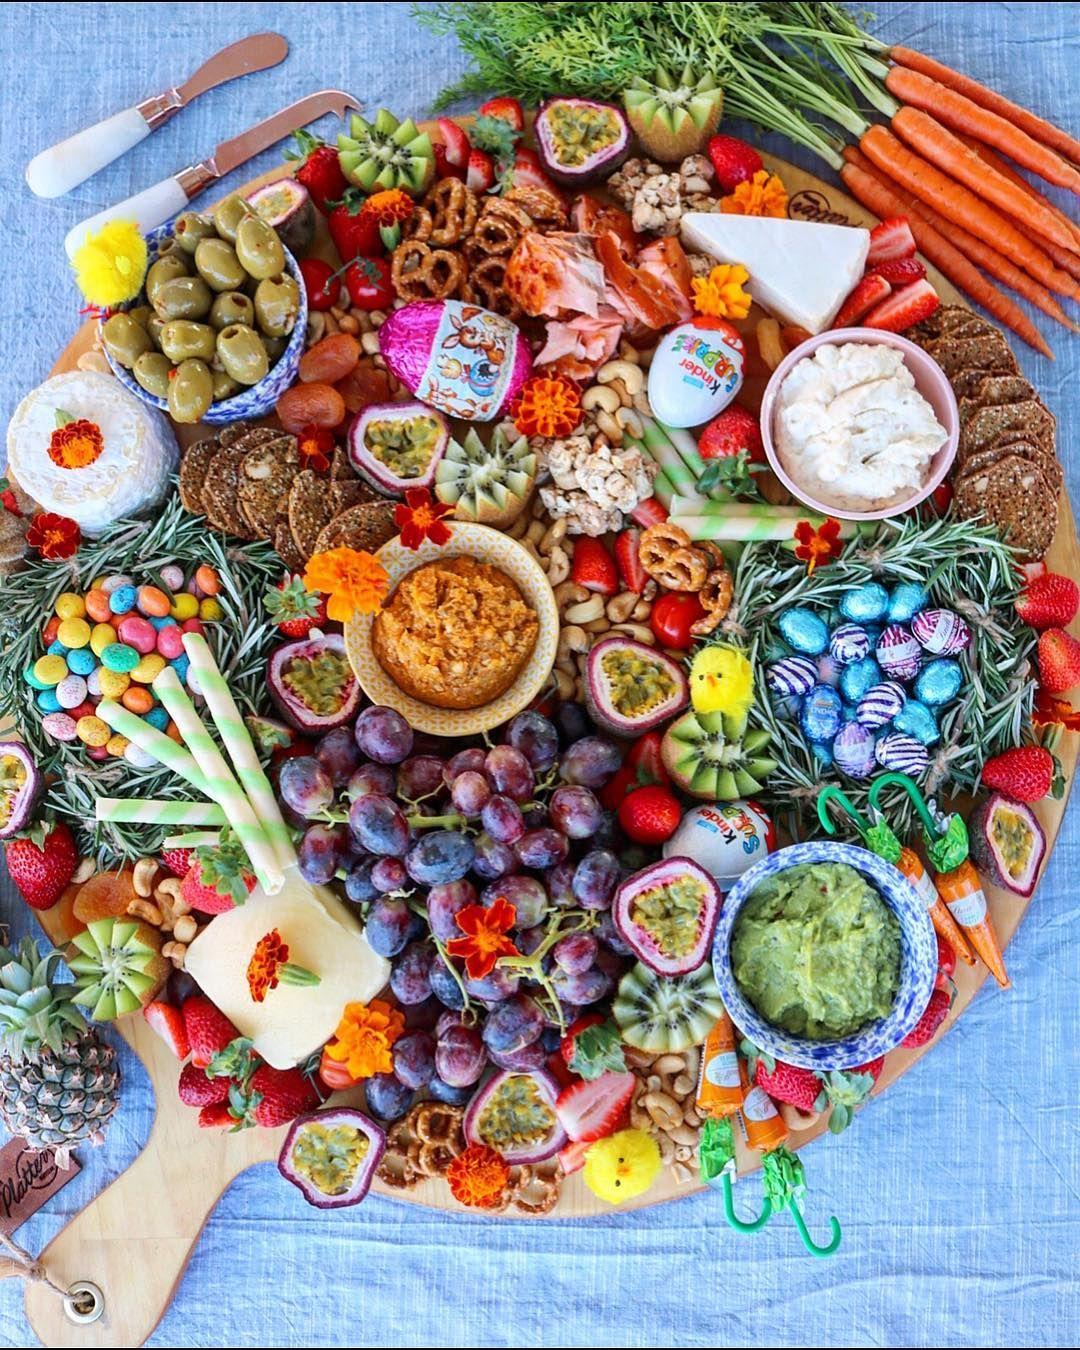 Next-level Easter Party Ideas That Are Instagram-worthy